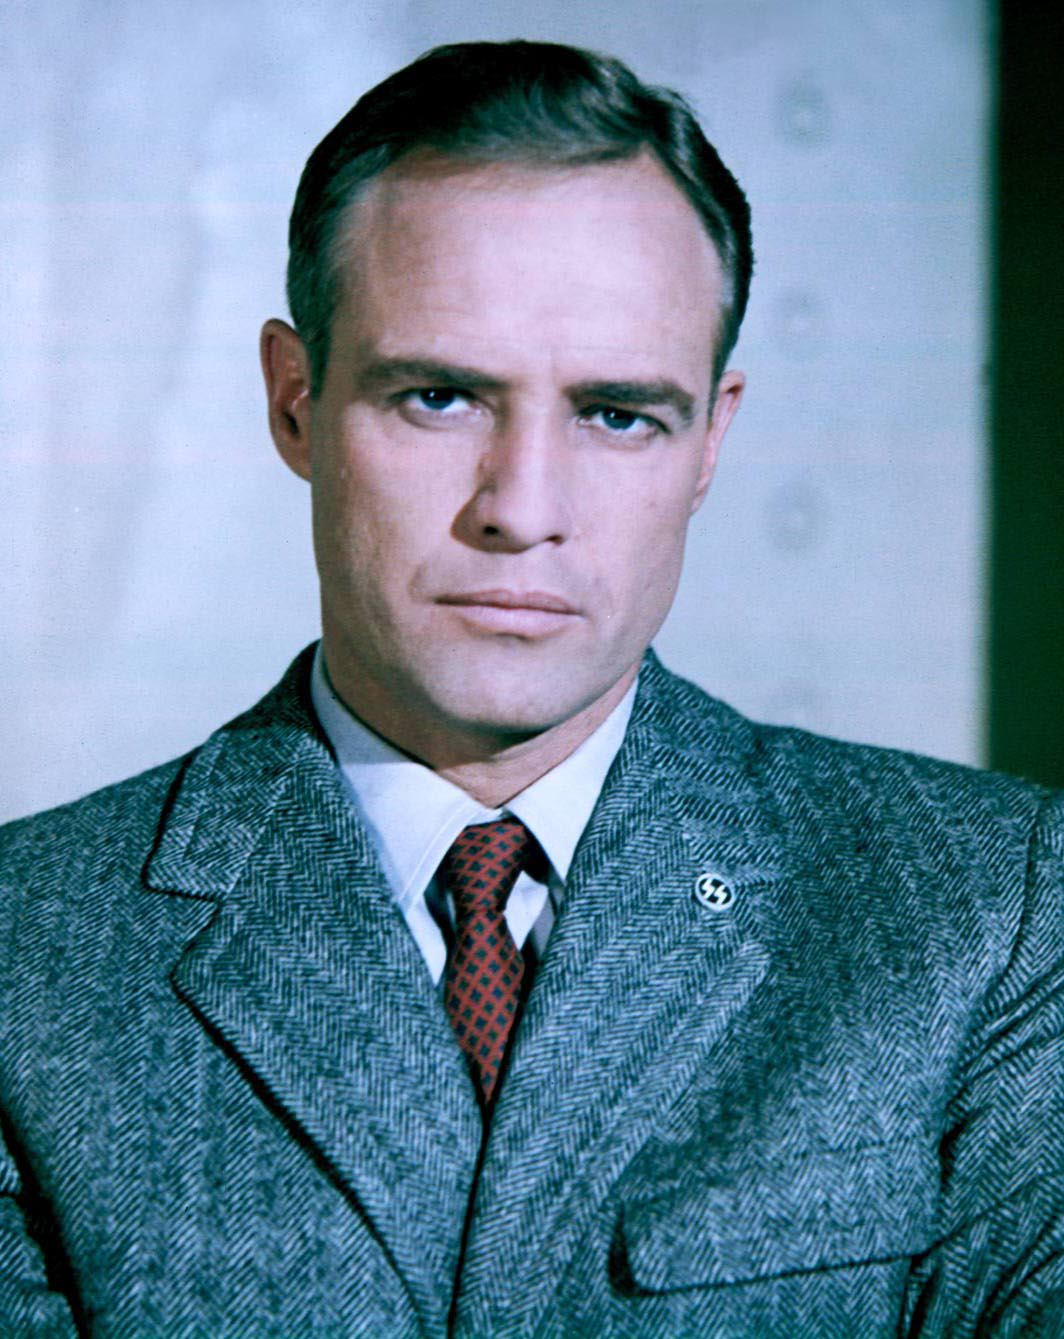 Marlon Brando, actor | Photo: Getty Images